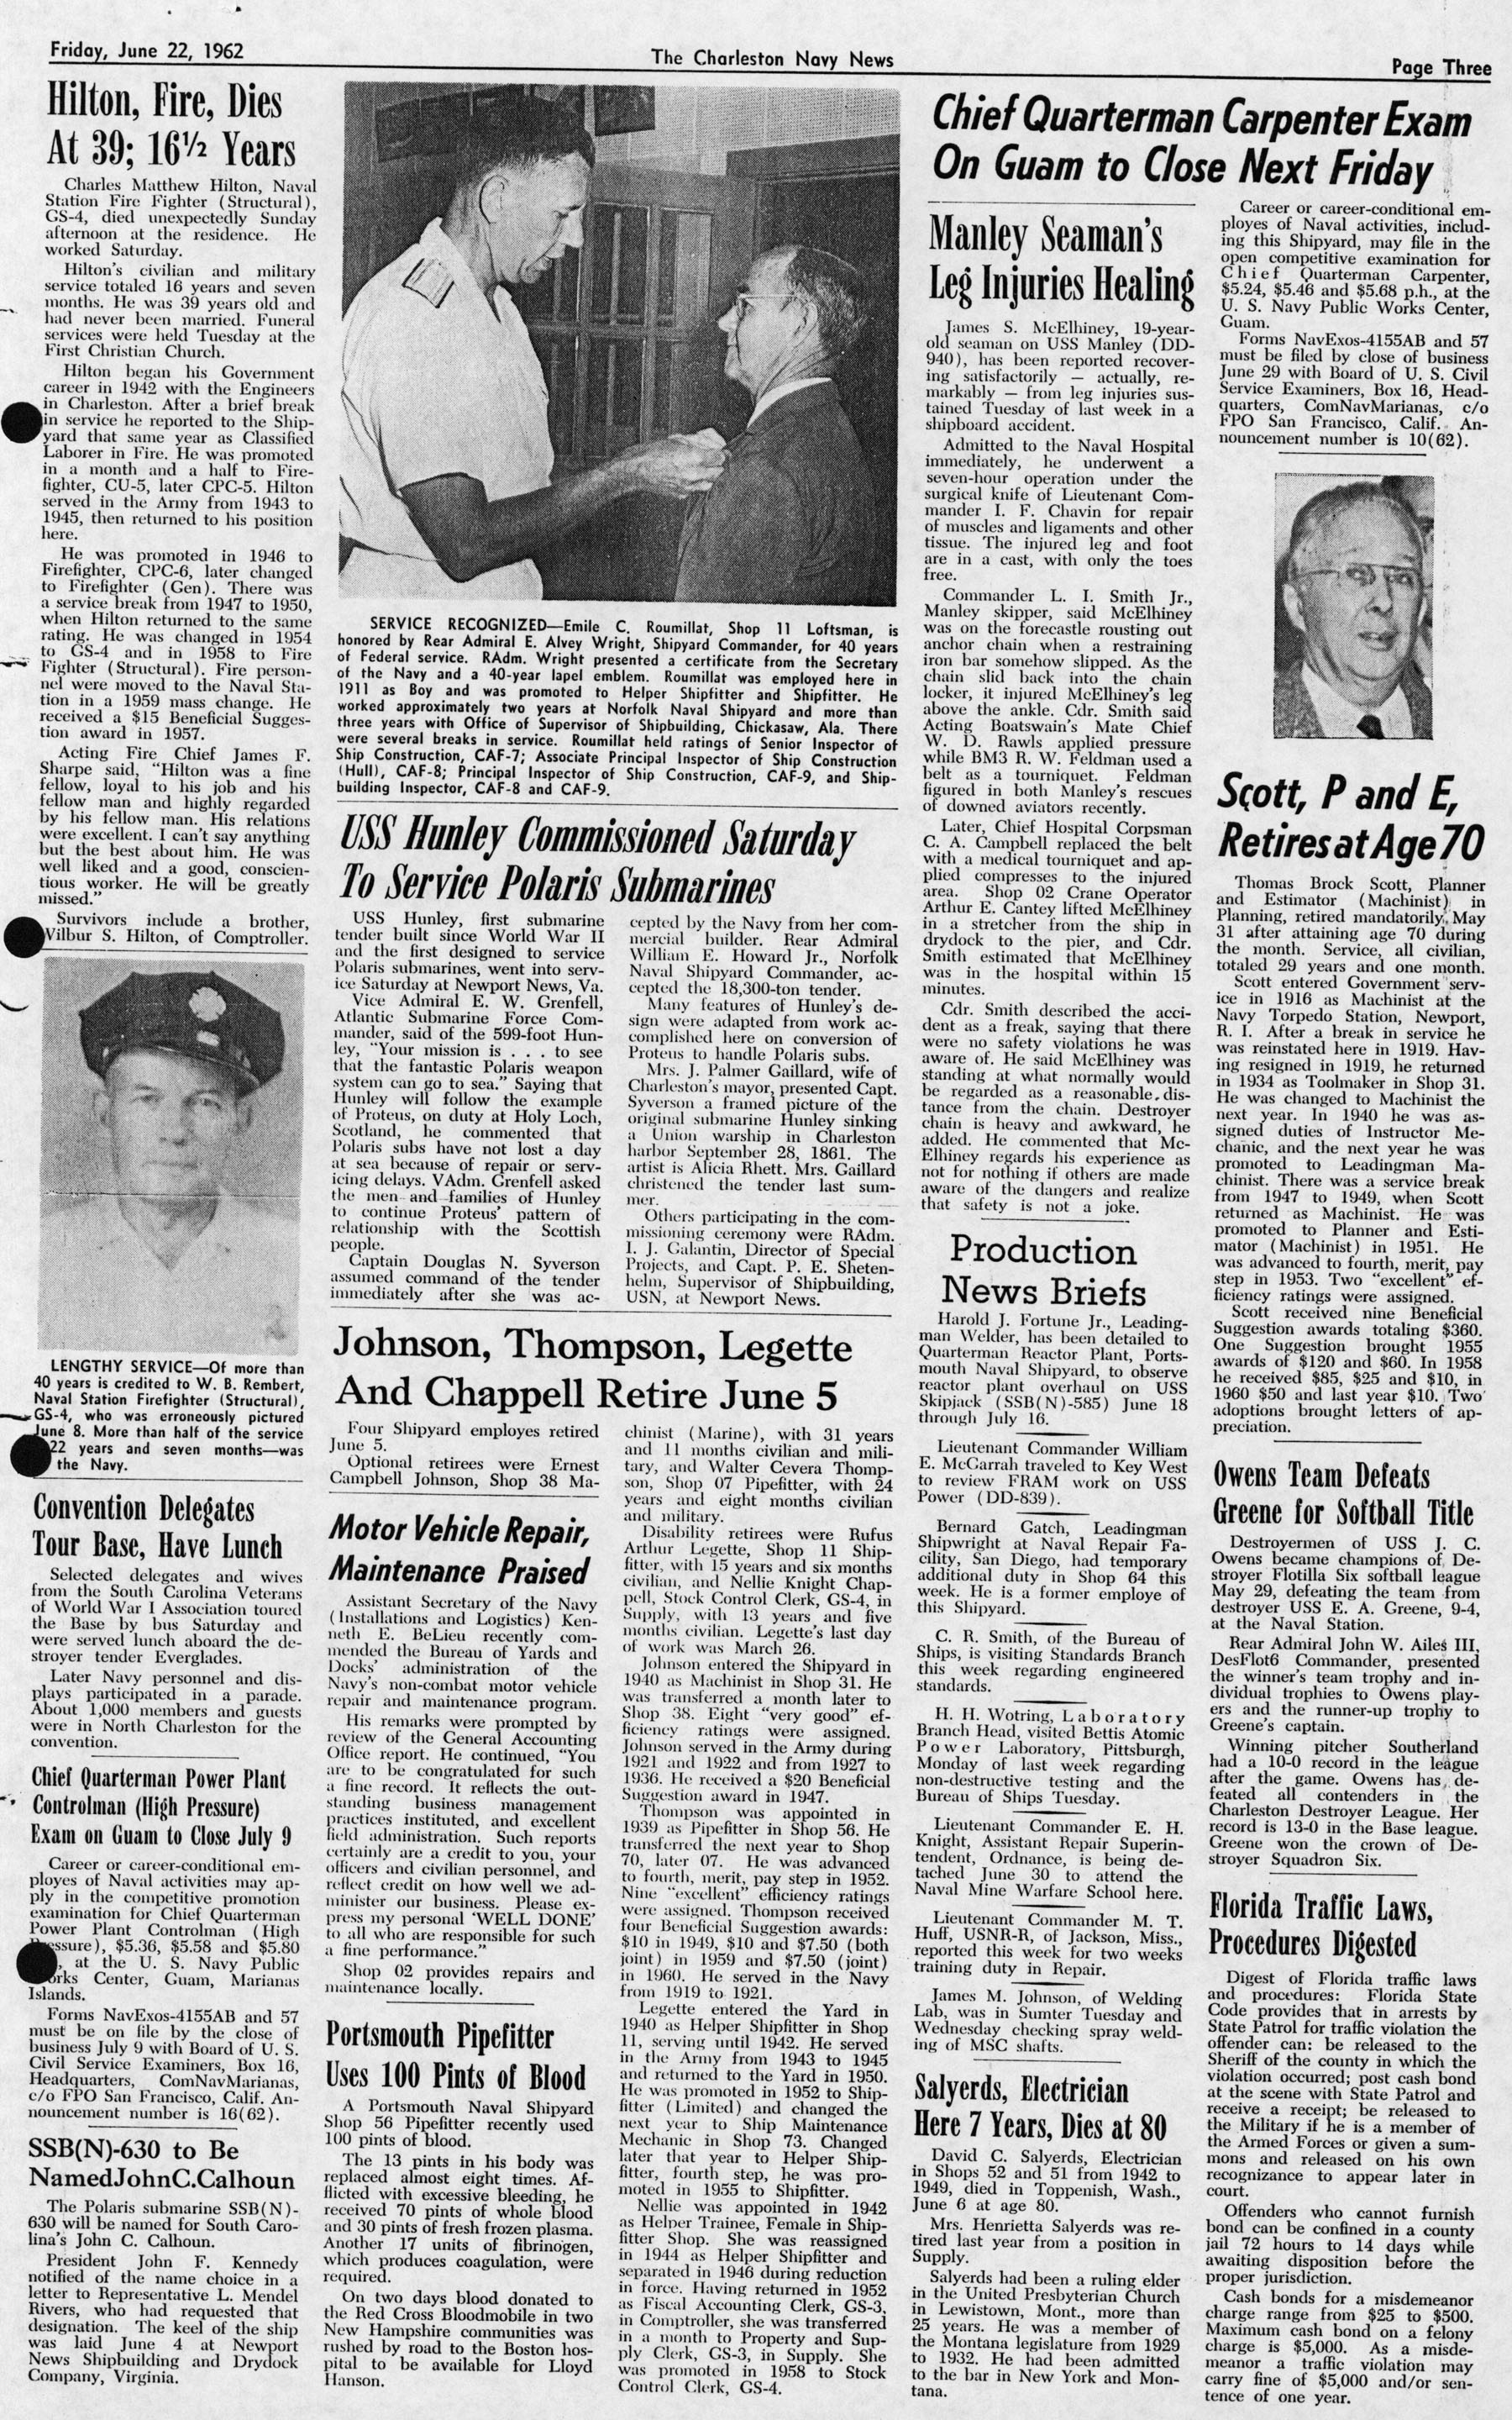 The Charleston Navy News, Volume 20, Edition 24, page iii